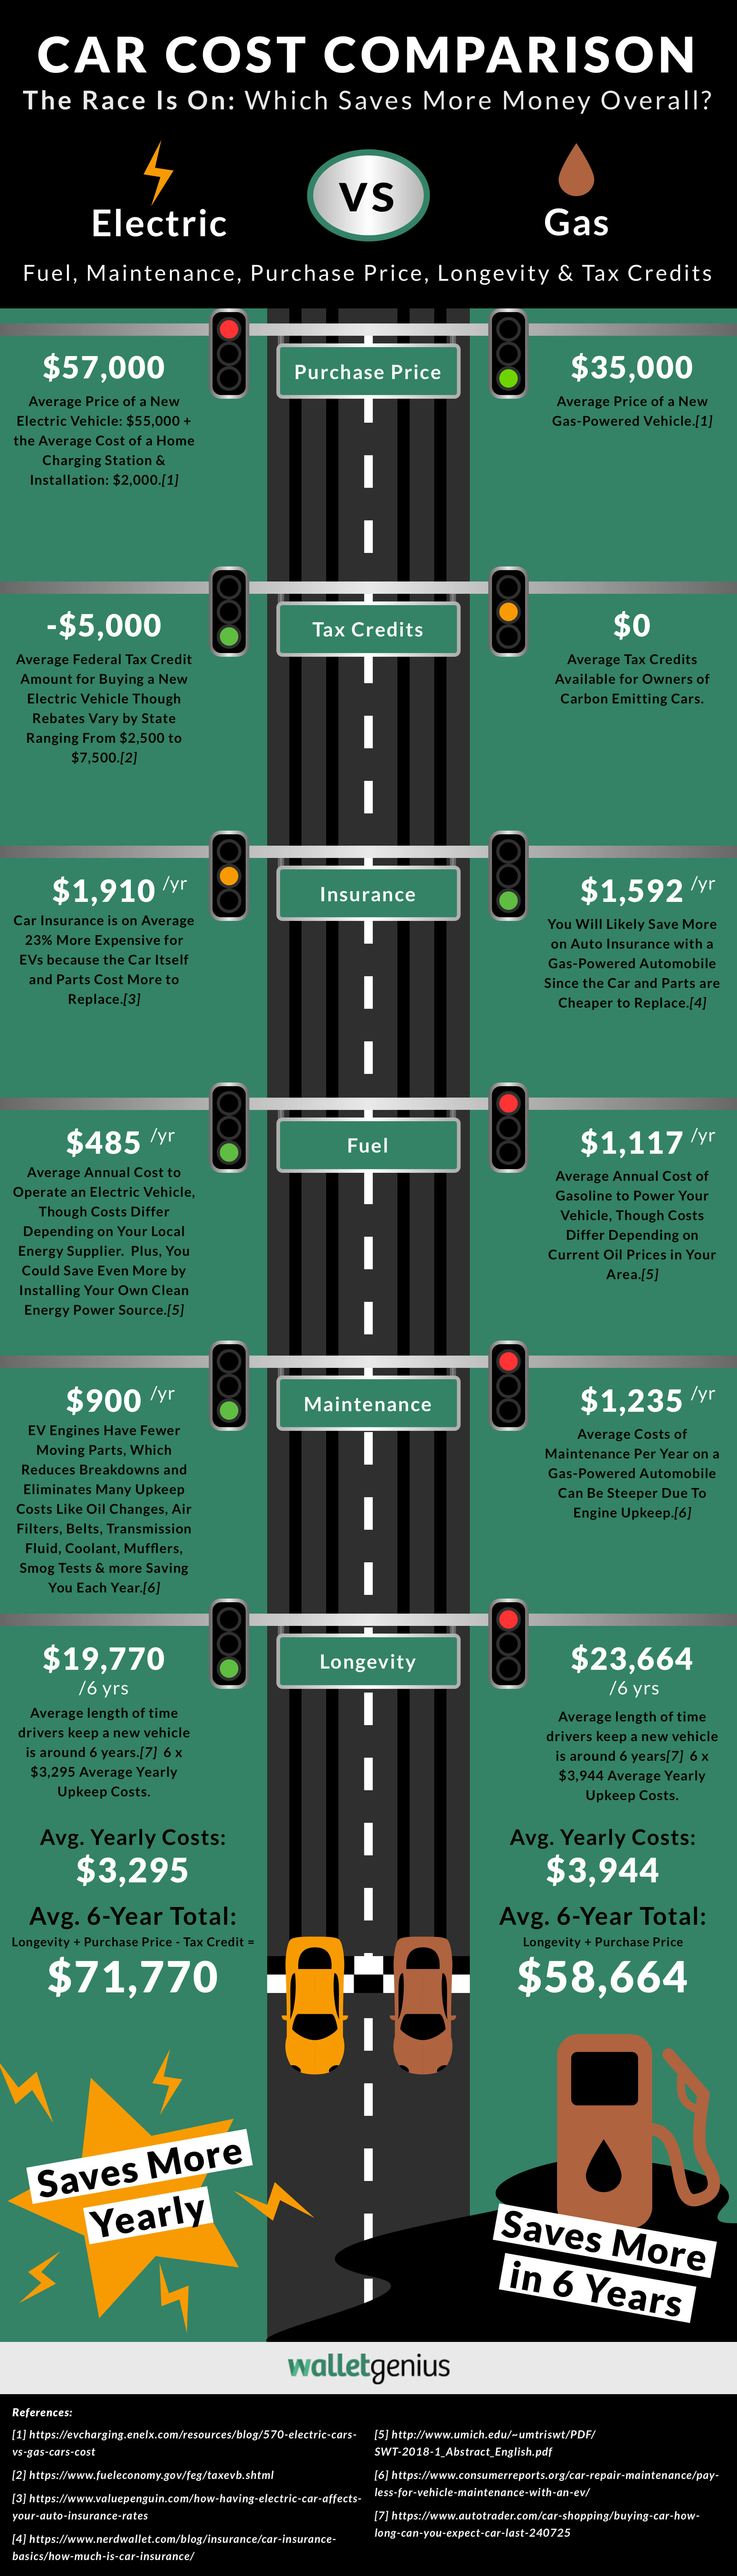 electric car vs gar cost which truly save you the money money